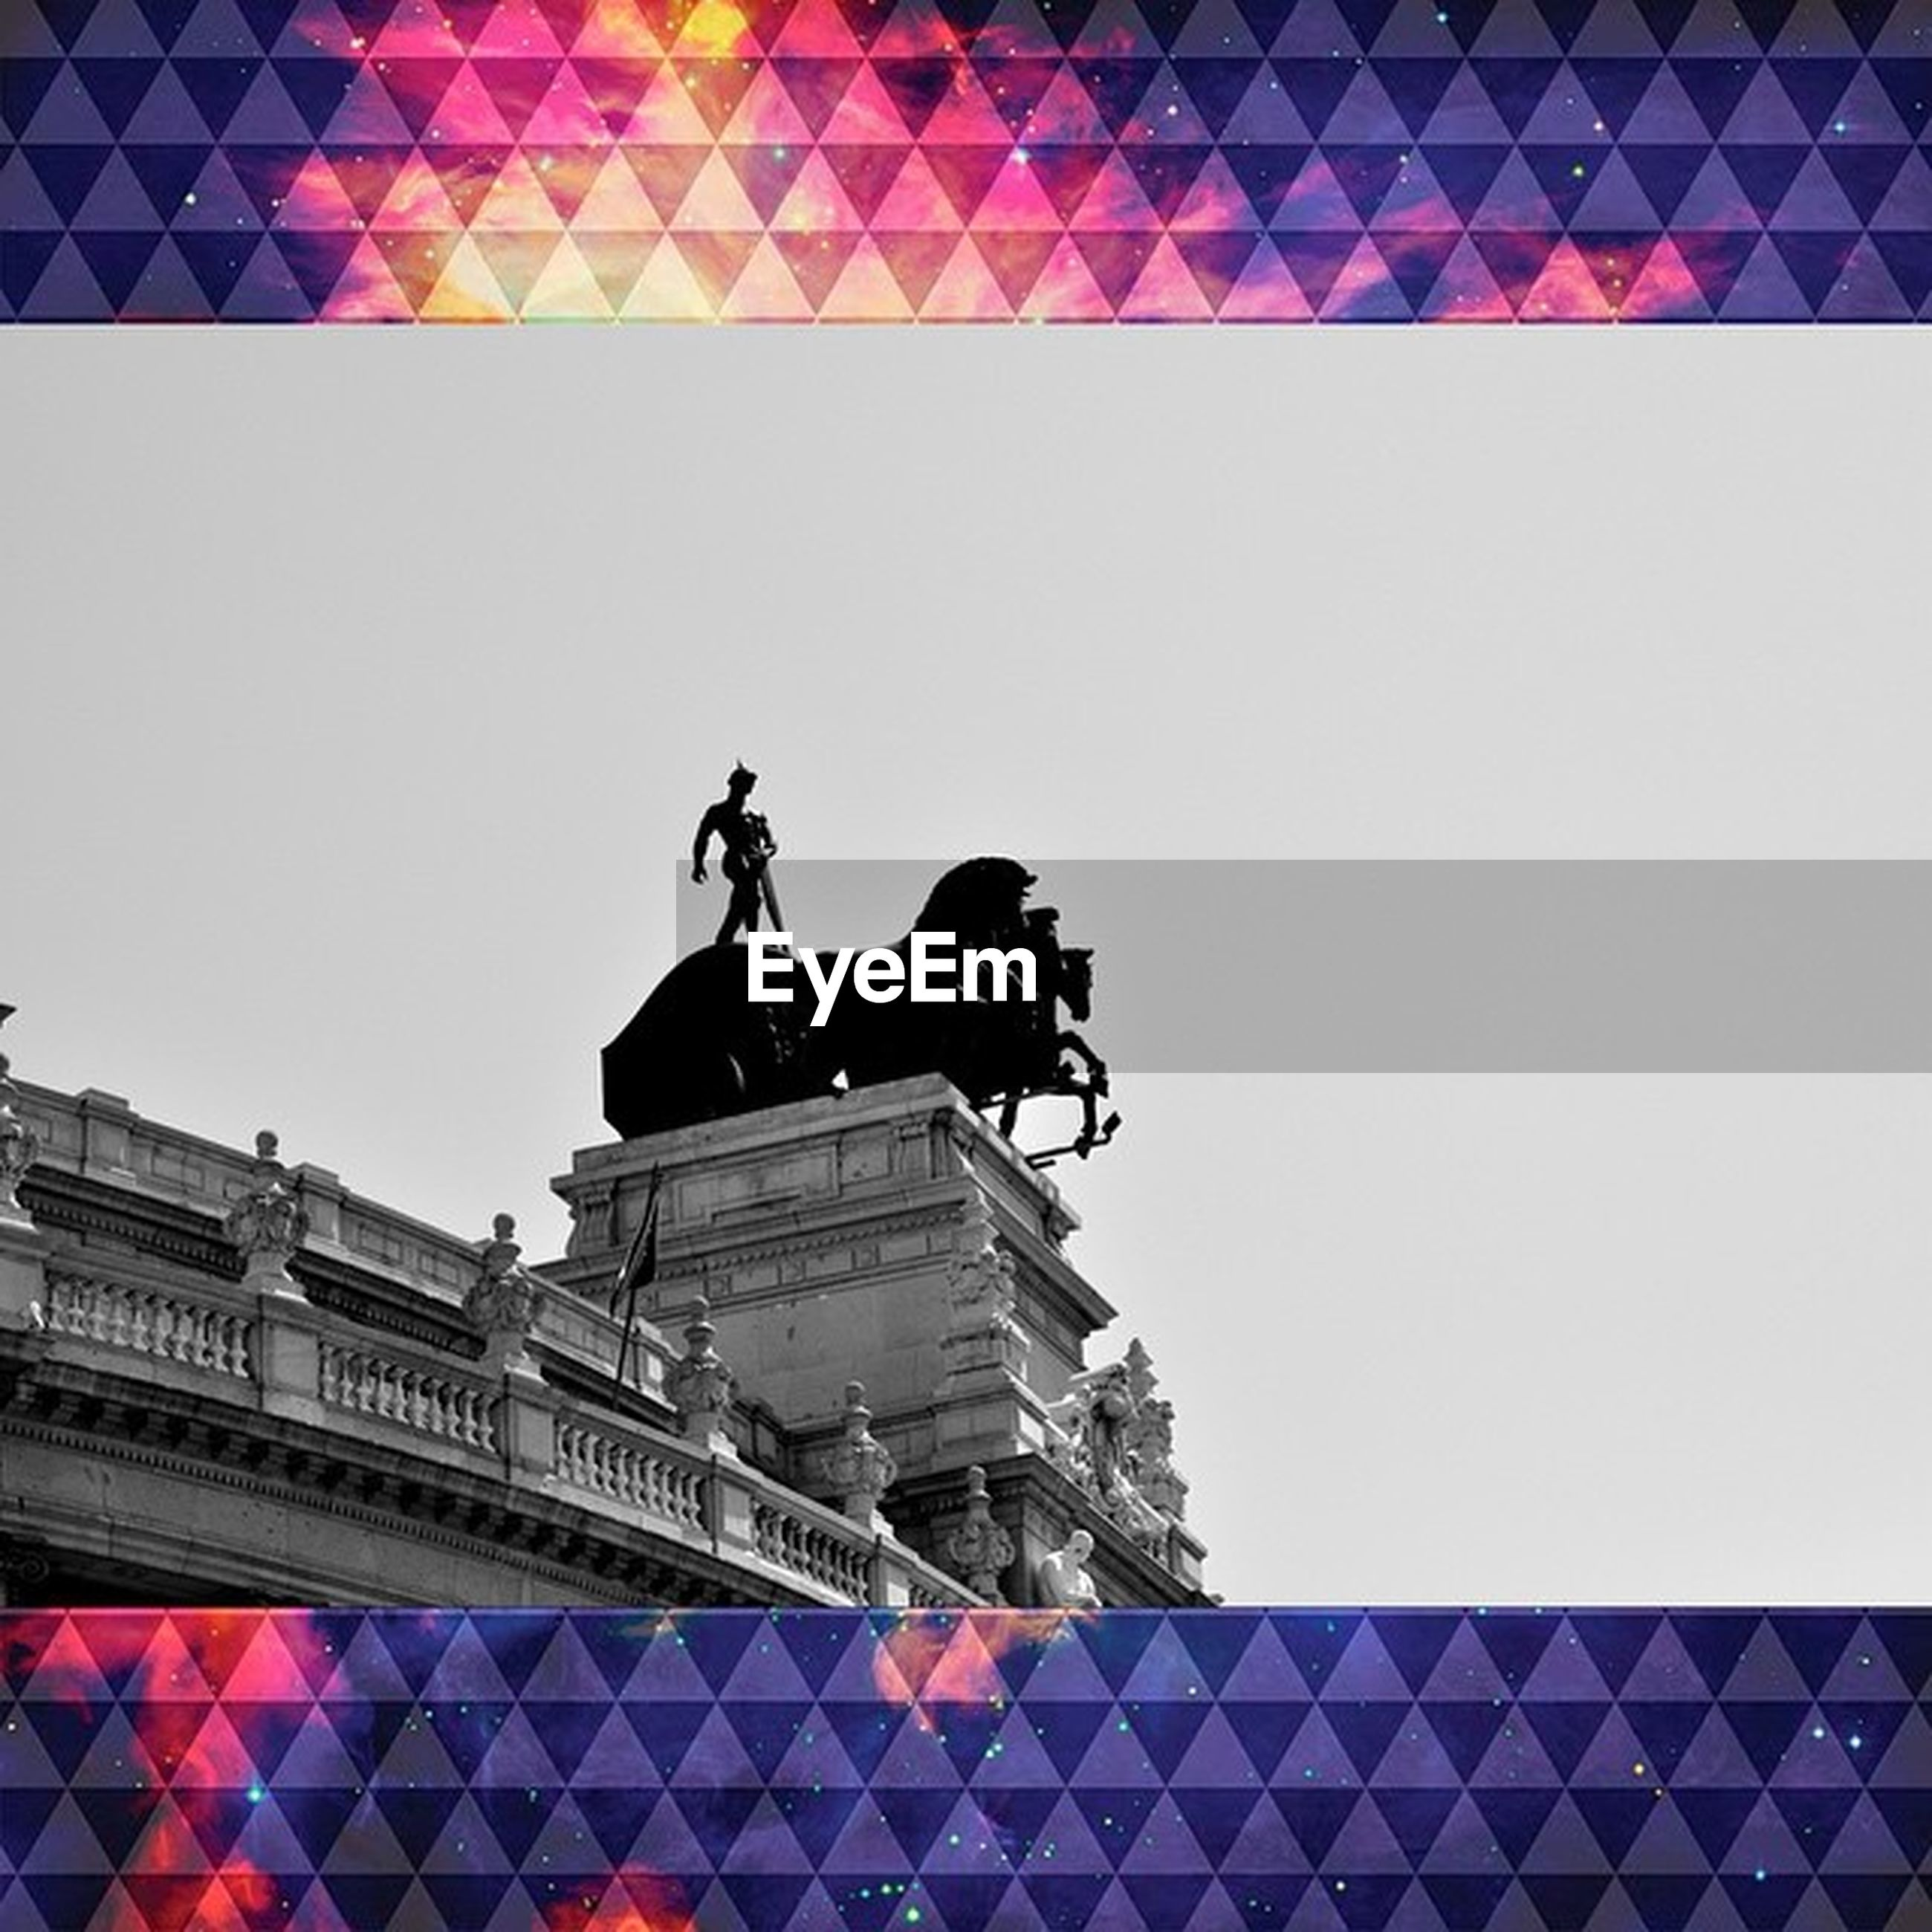 statue, human representation, sculpture, art and craft, low angle view, architecture, built structure, art, creativity, famous place, building exterior, clear sky, travel, international landmark, travel destinations, capital cities, history, tourism